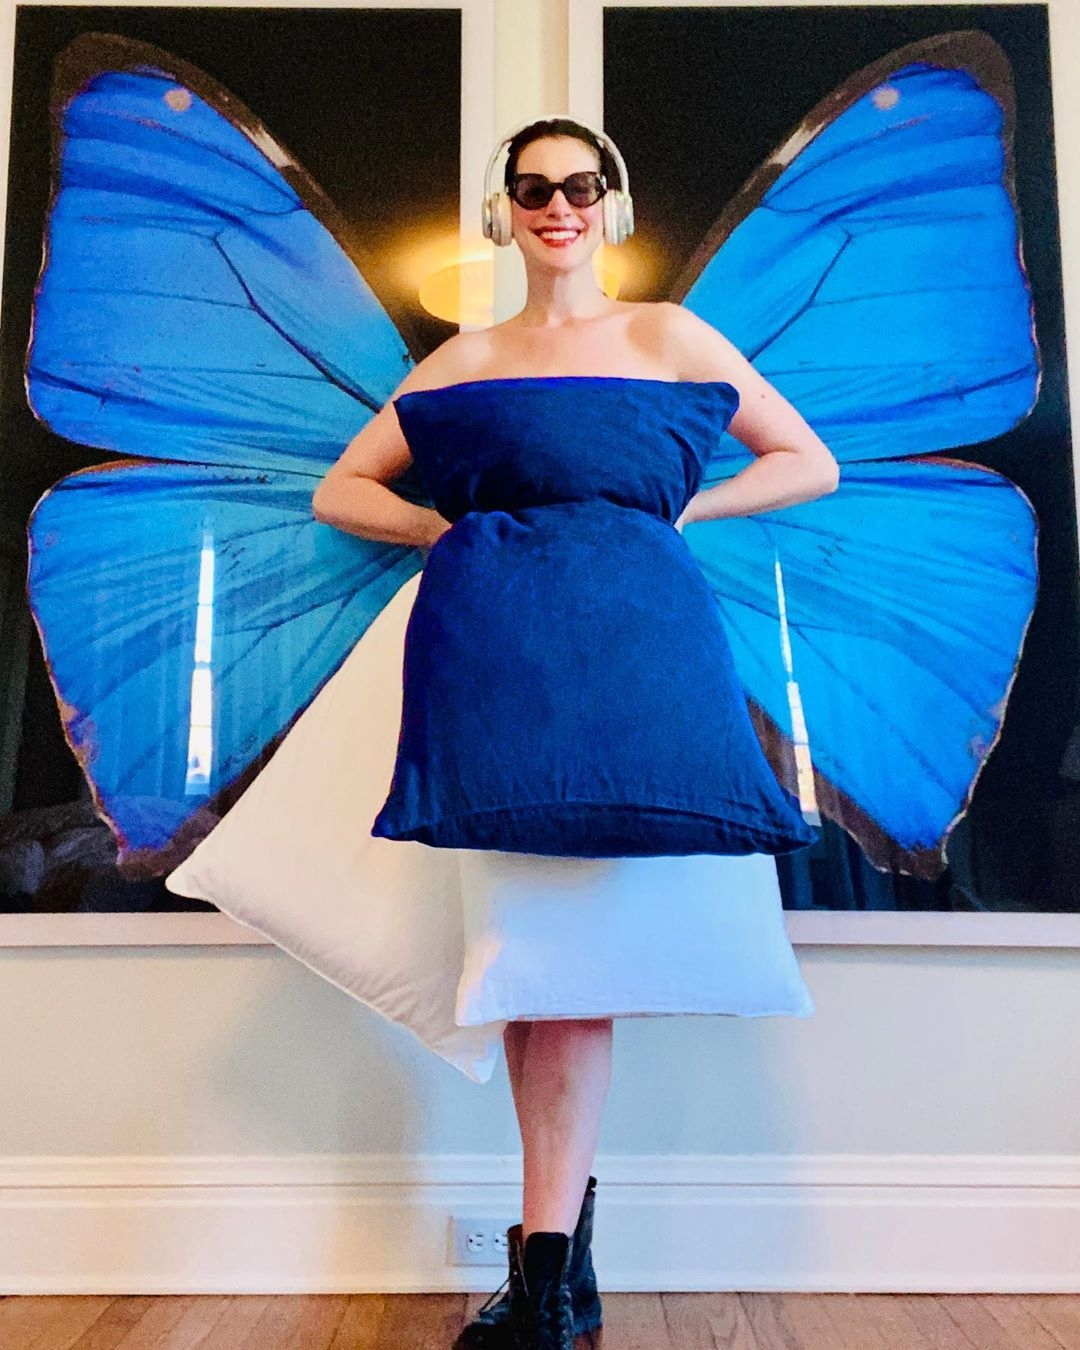 Anne Hathaway wearing blue wings and pillows, parting part in the #PillowChallenge